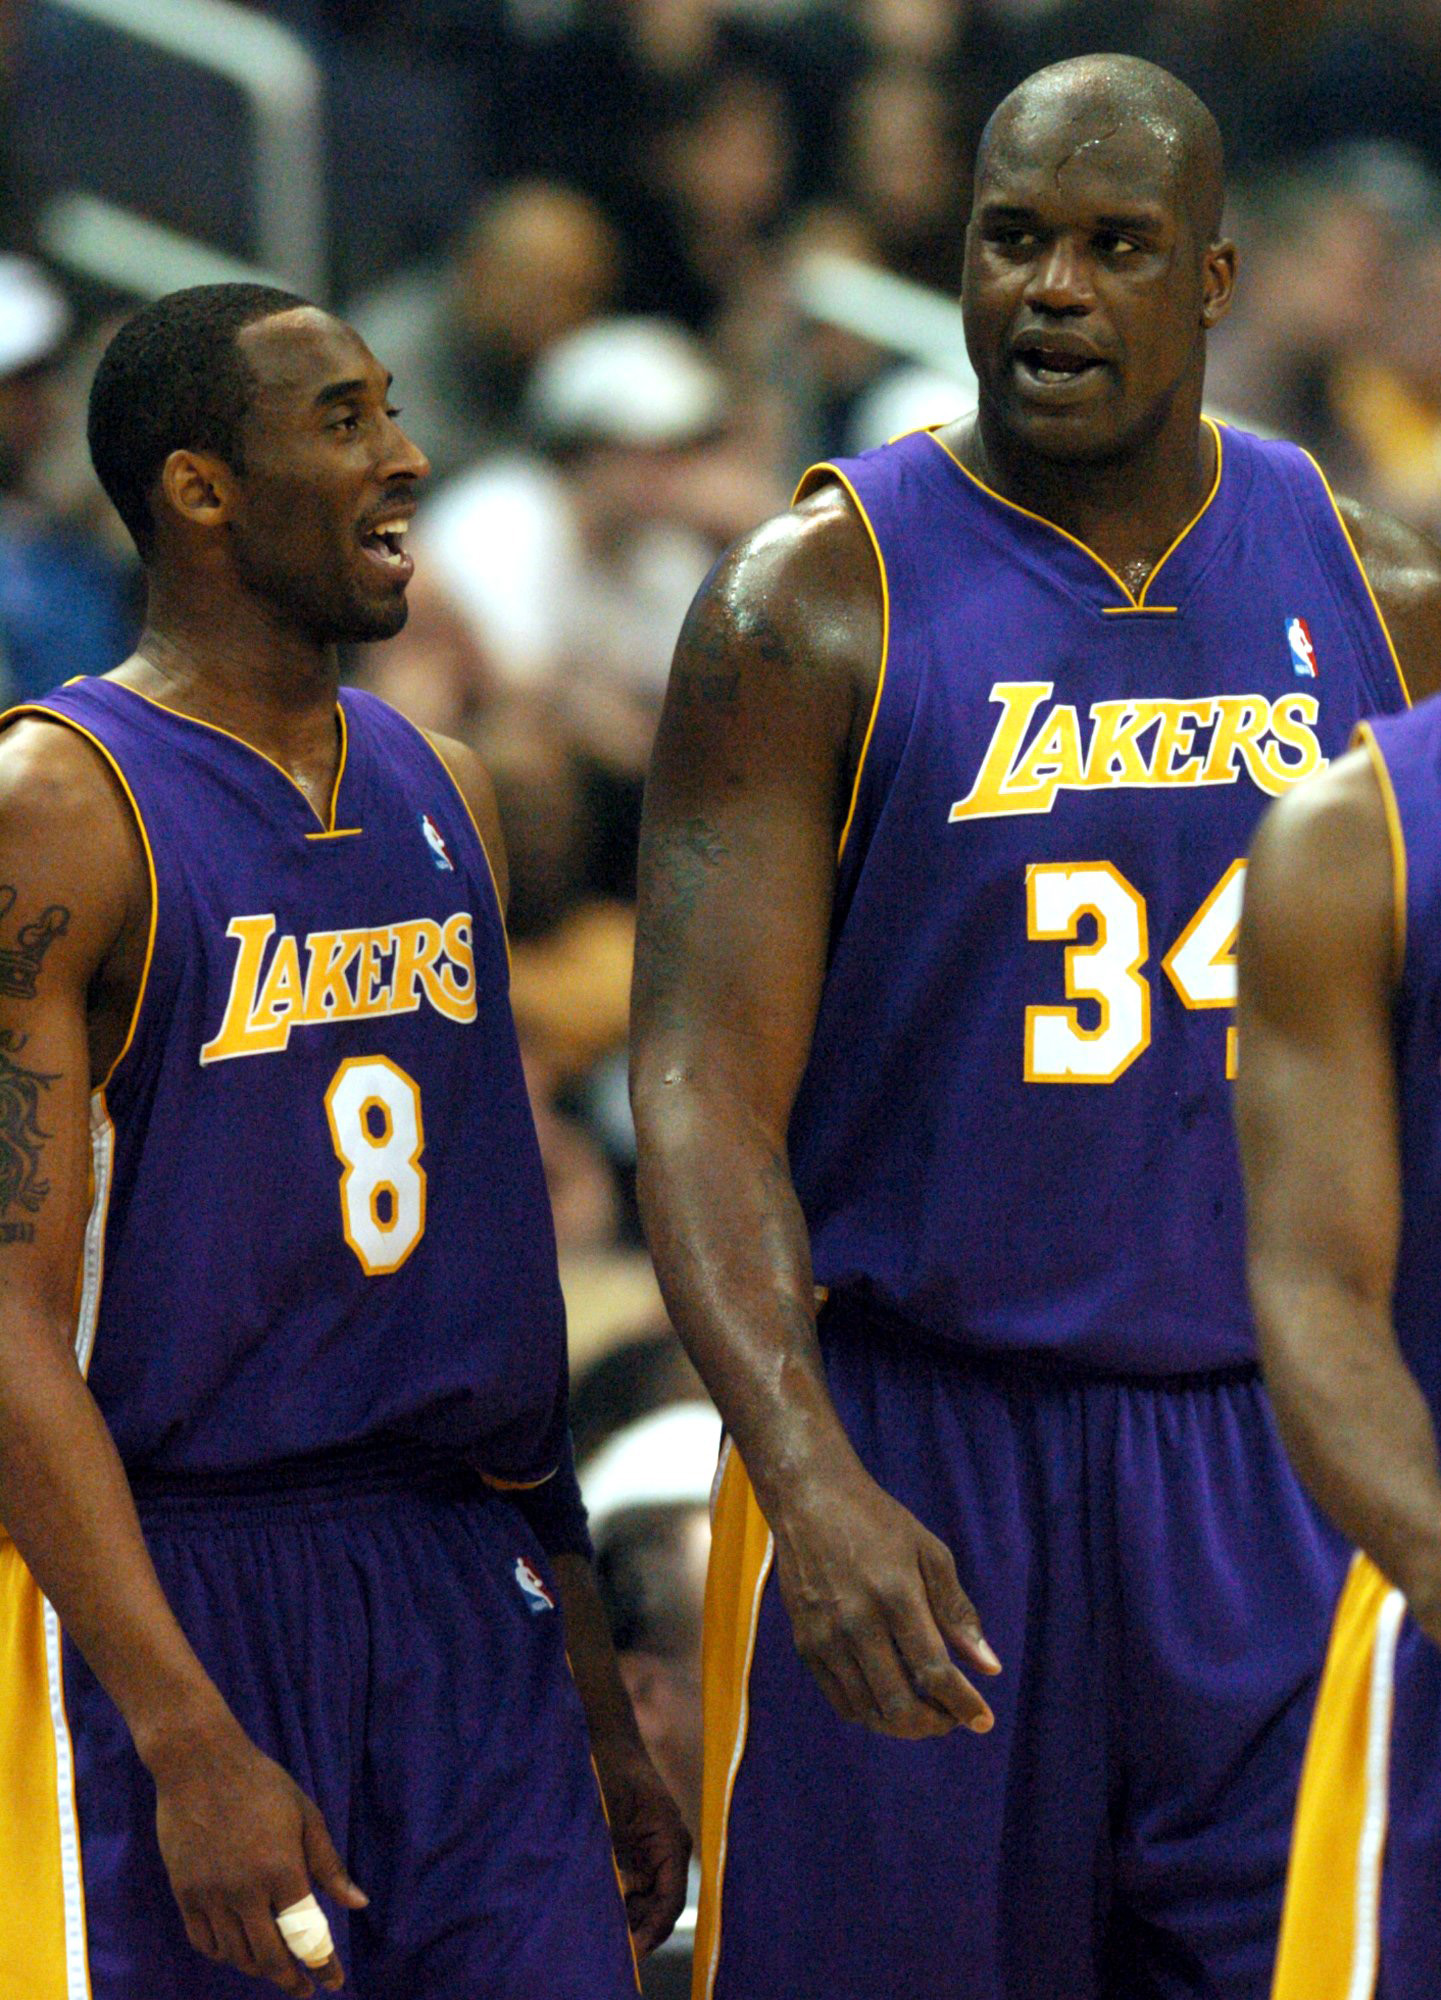 A tearful Shaquille O'Neal on Kobe Bryant's death: 'I've lost a little brother'